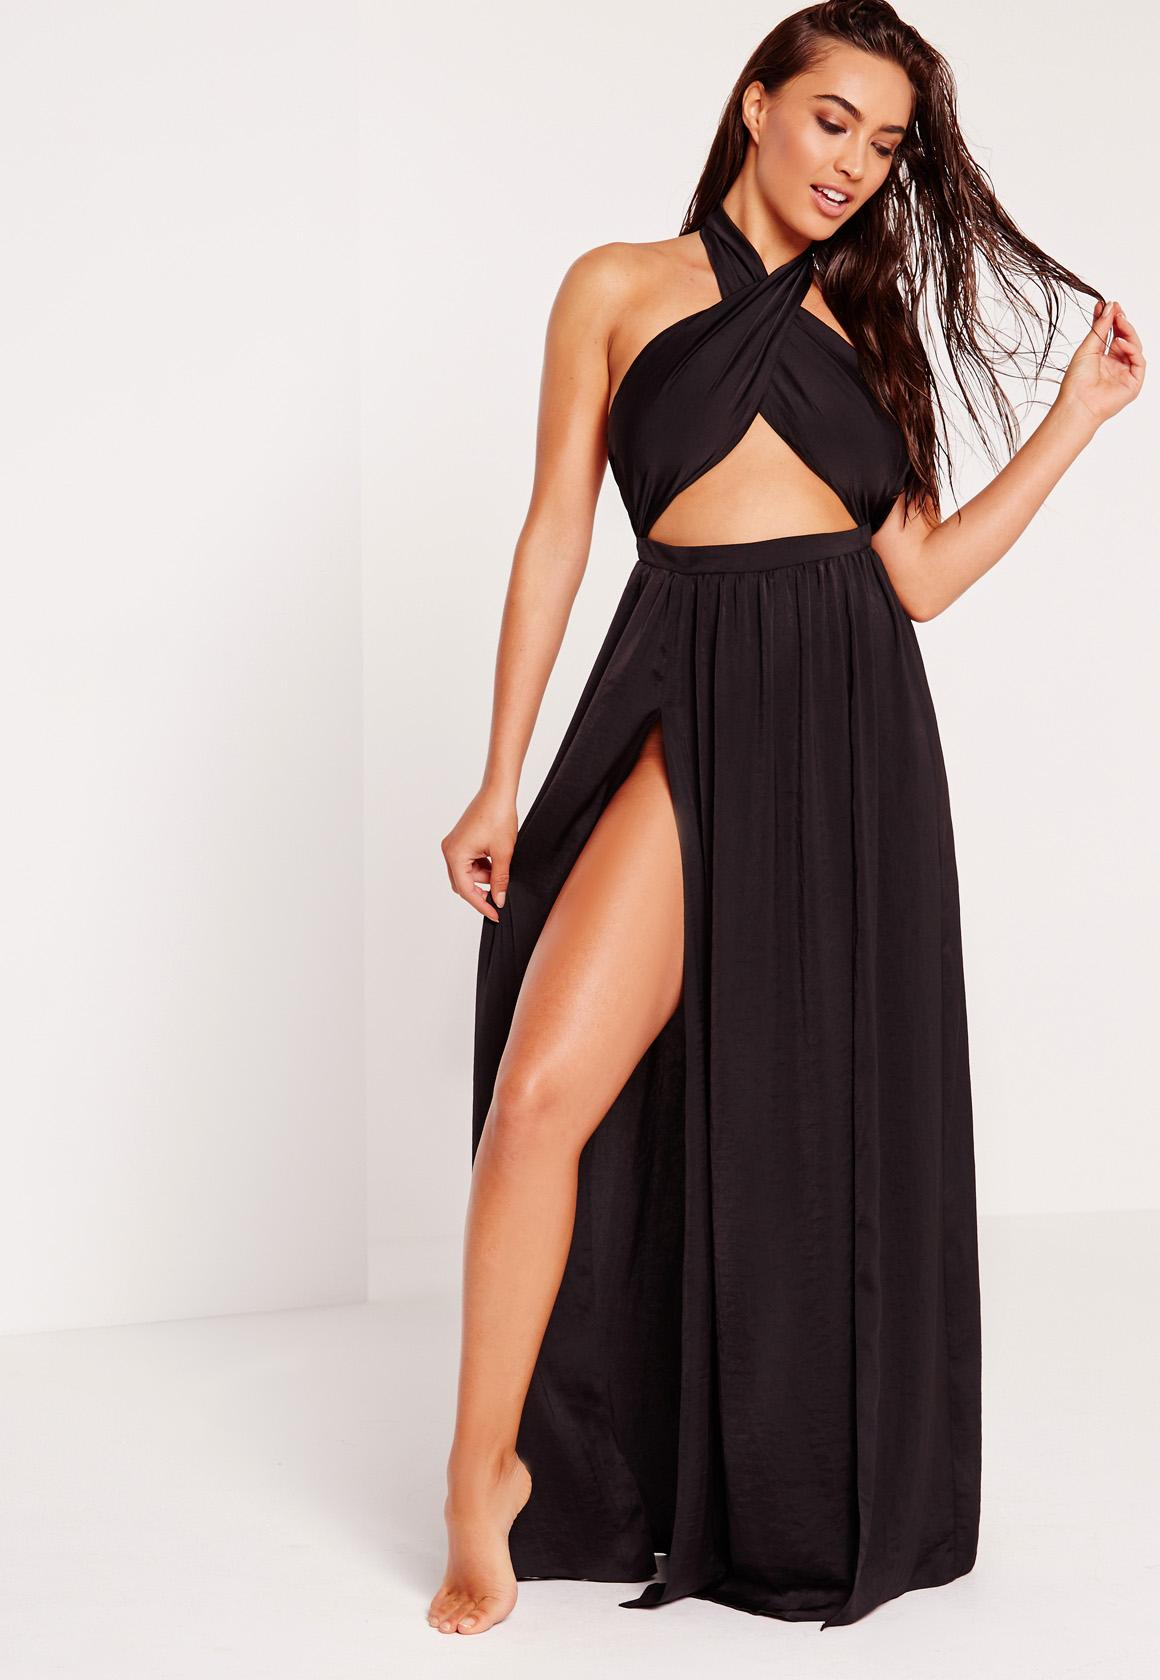 ABAD x Missguided Halter Neck Maxi Beach Dress Black | Missguided